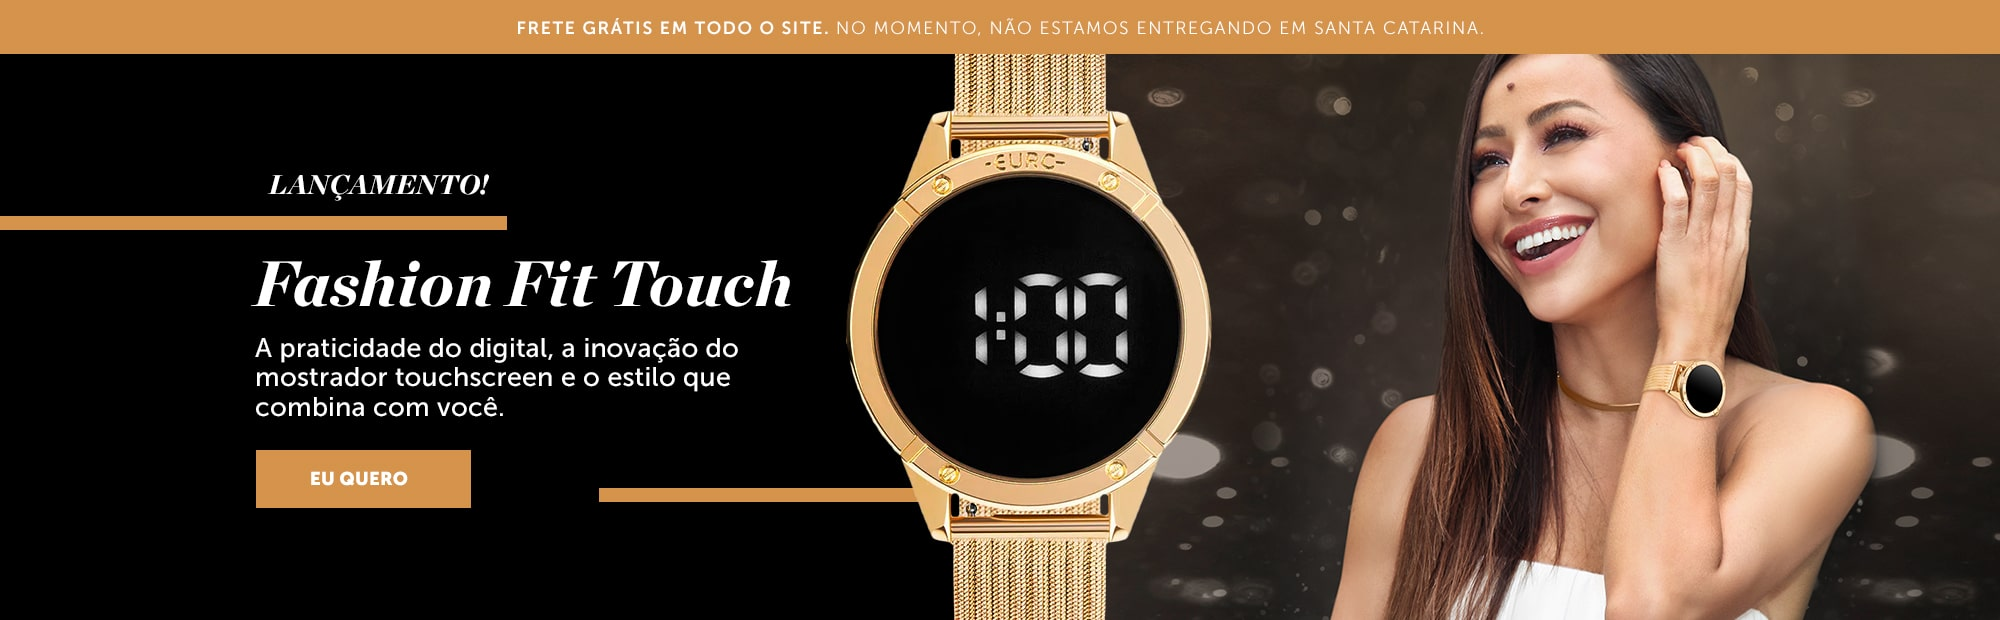 Fashion Fit Touch